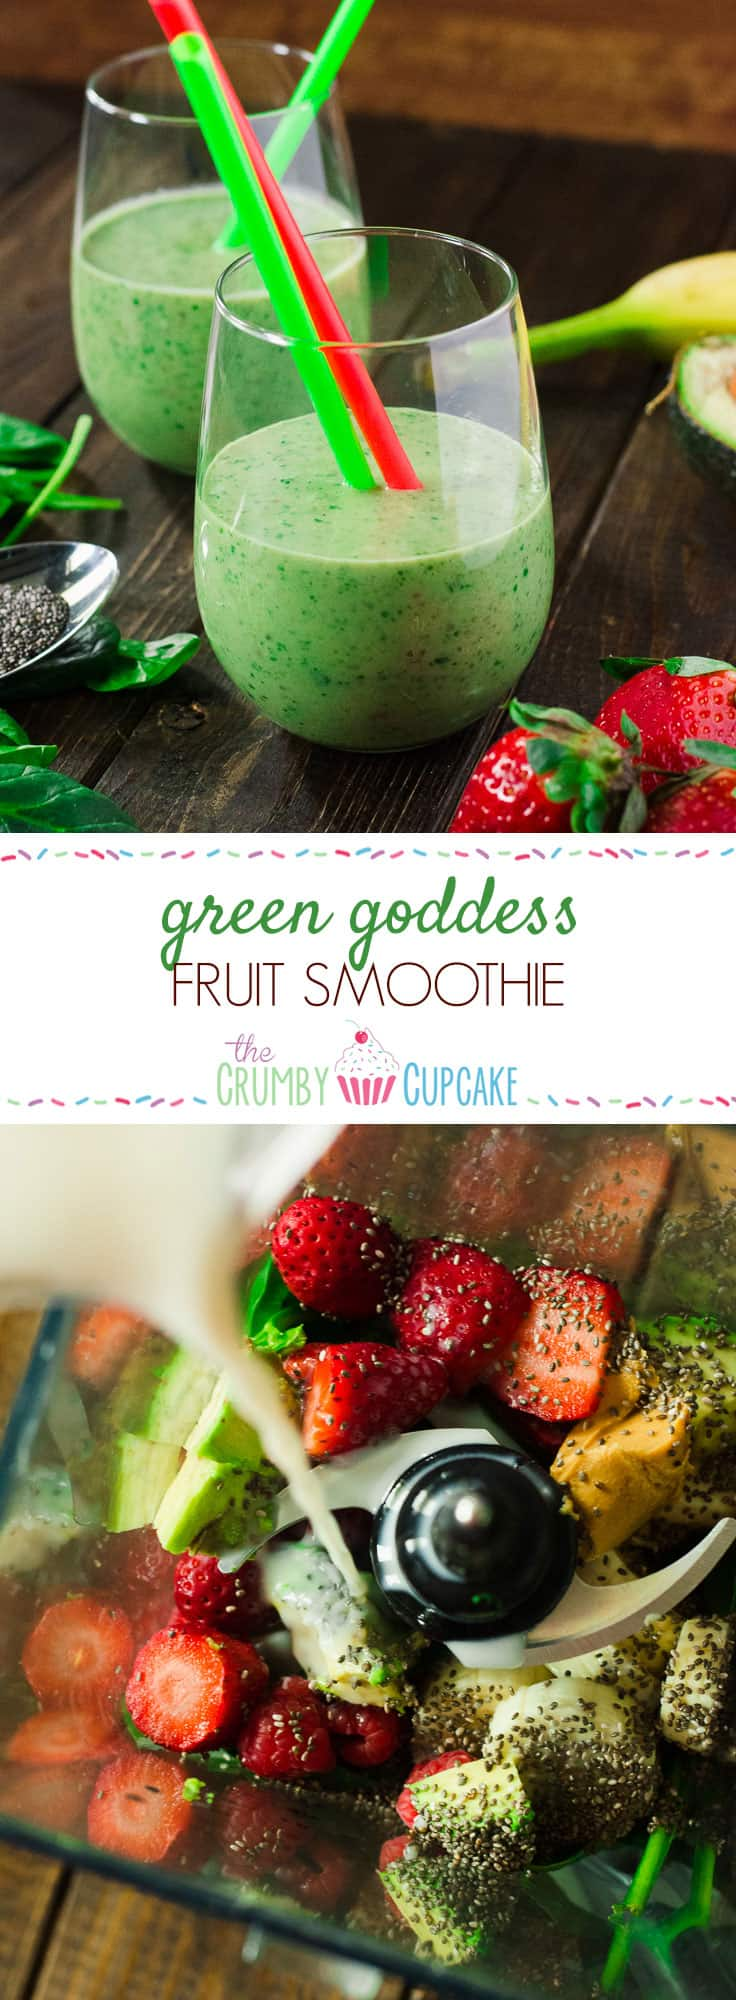 Green Goddess Fruit Smoothie | This healthy, dairy-free, vegan Green Goddess smoothie is loaded with spinach, avocado, and lots of fresh fruit, providing plenty of nutrients to power you through your day.